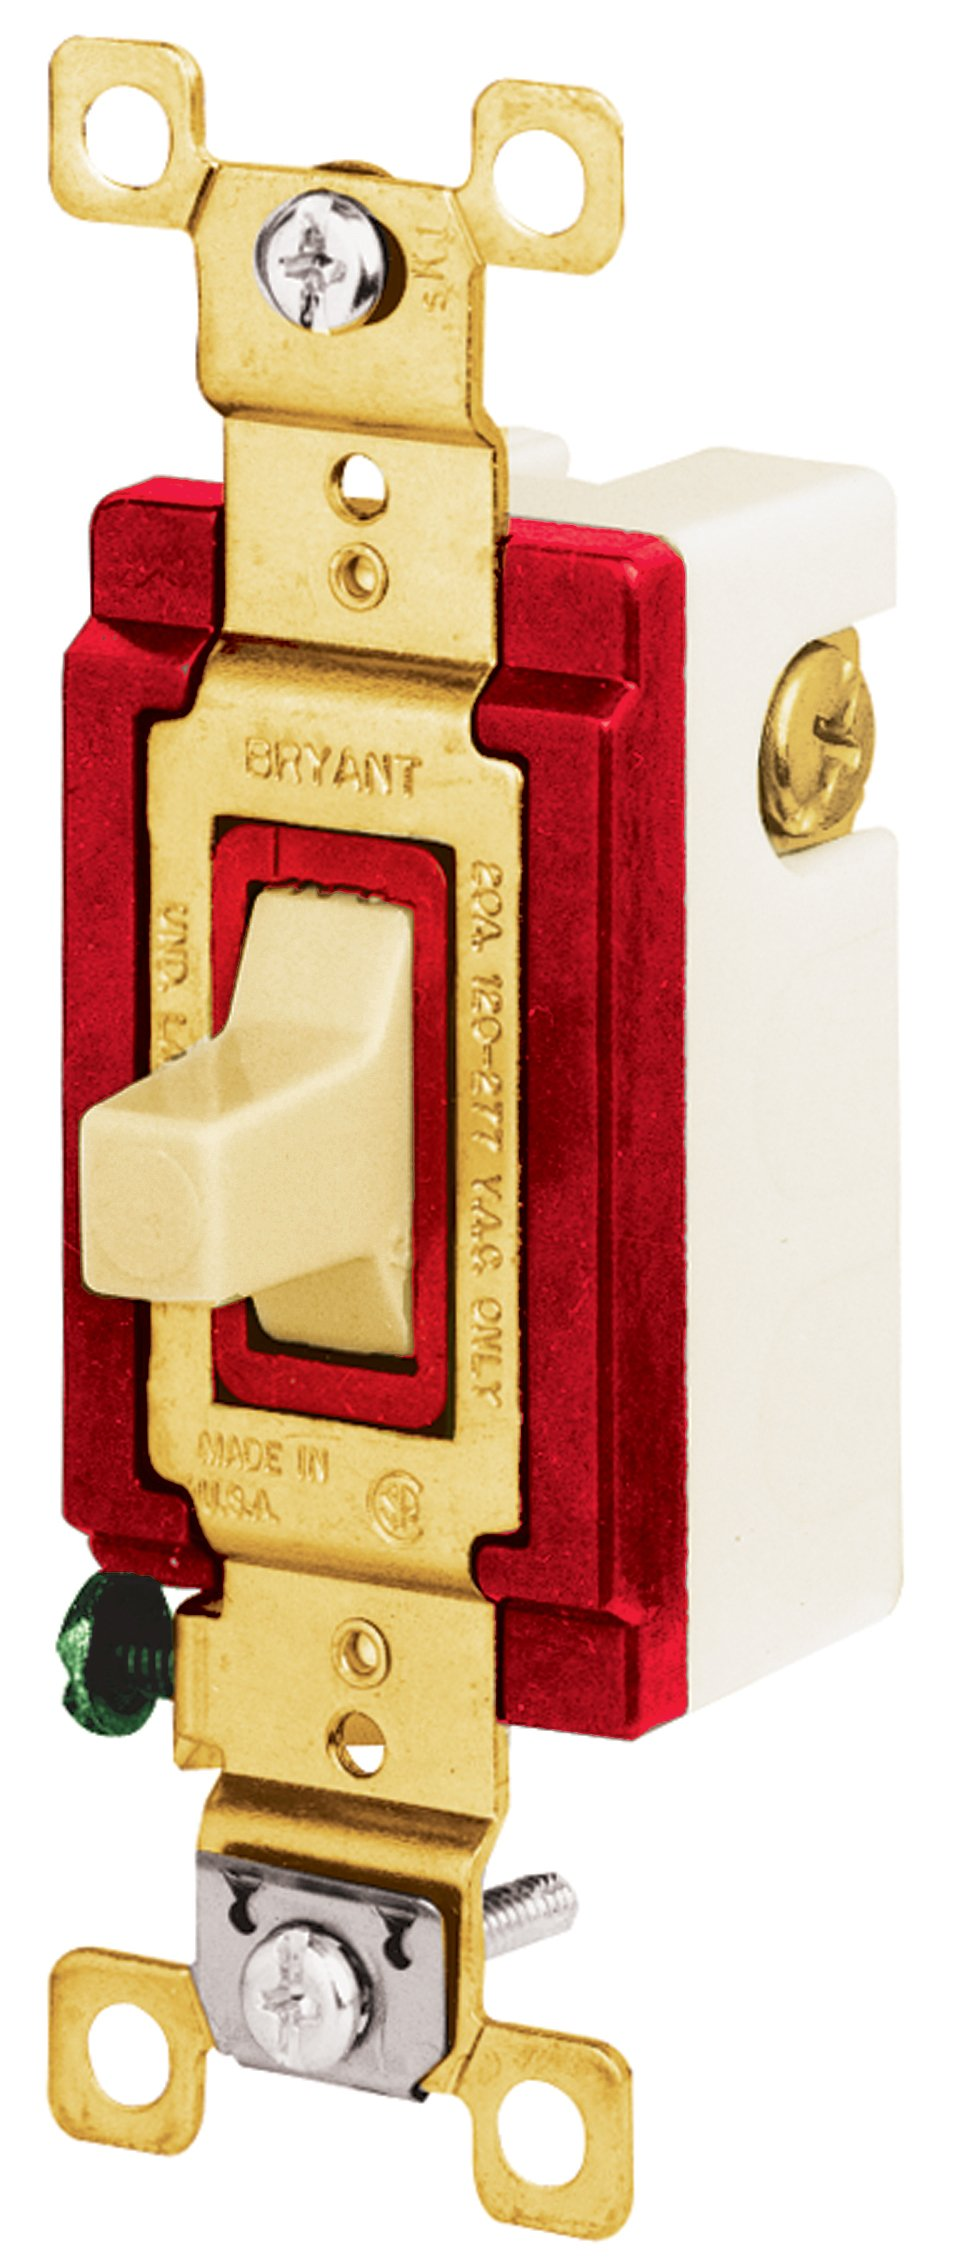 Bryant Electric 4921I Toggle Switch, Single-Pole, Double-Throw, 3-Position, 2-Circuit, Momentary Contact ''Center Off'', Industrial, 20 Amp, 120/277 VAC, Ivory